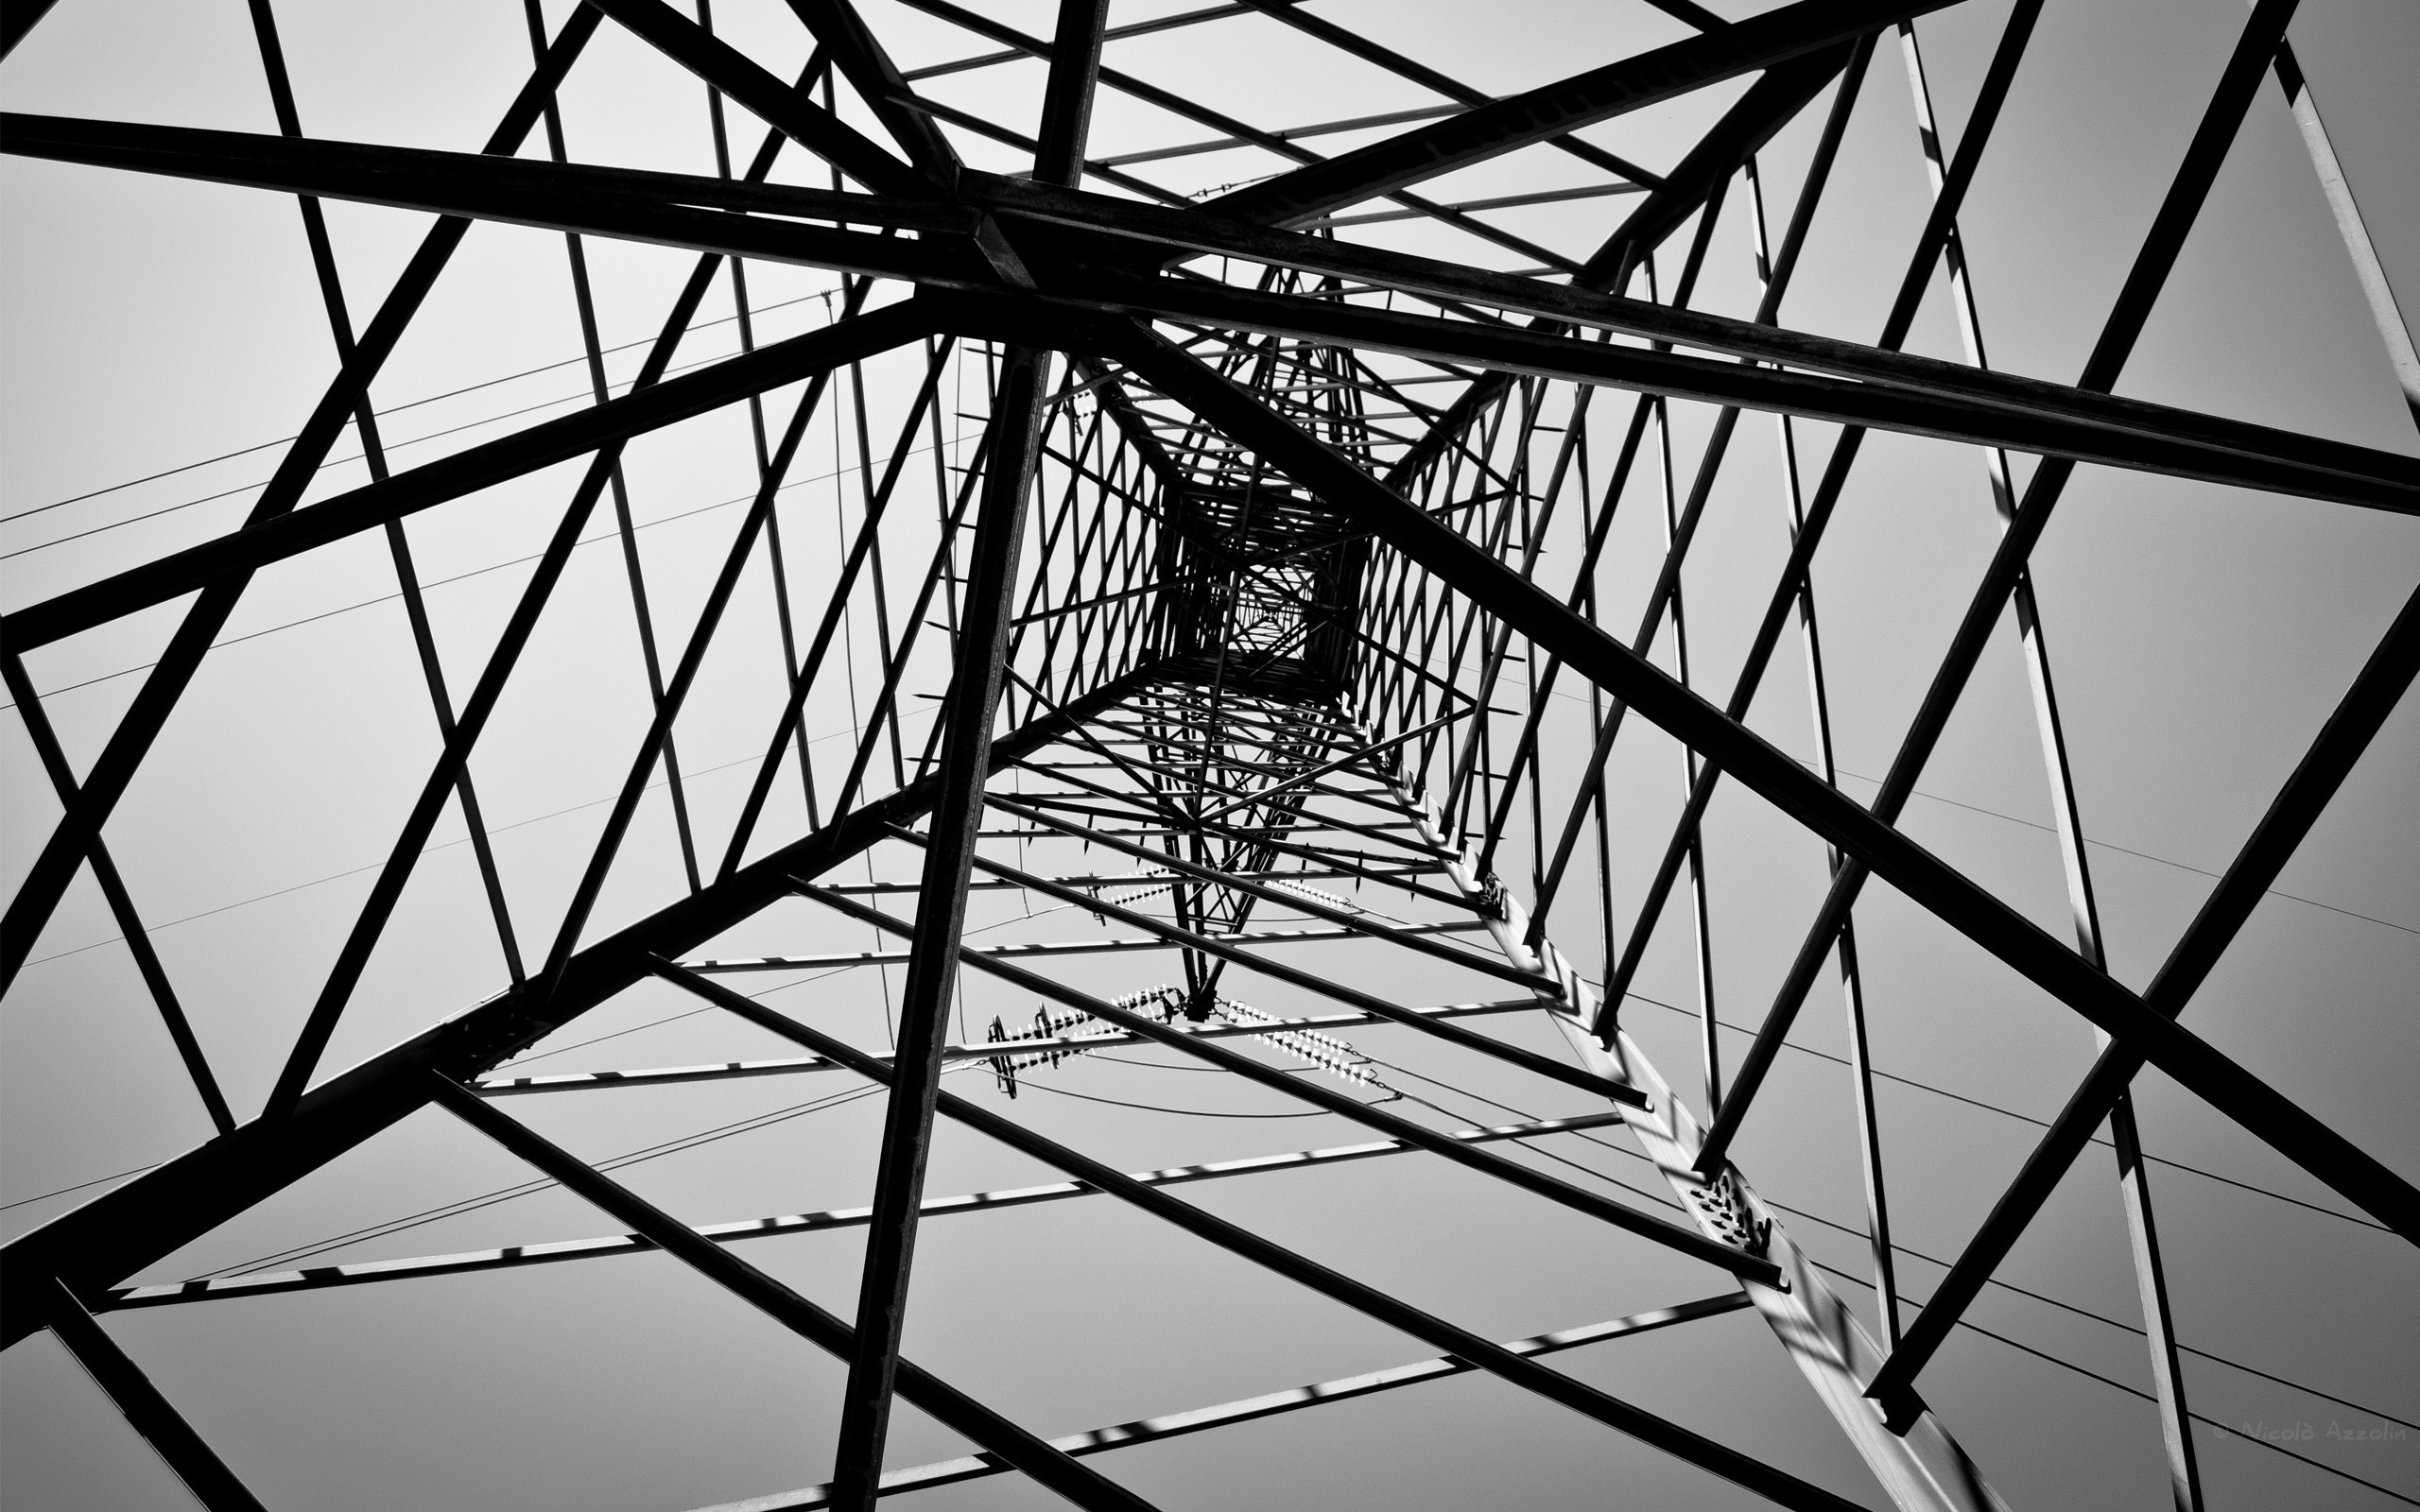 grayscale lines electricity pole HD Wallpaper